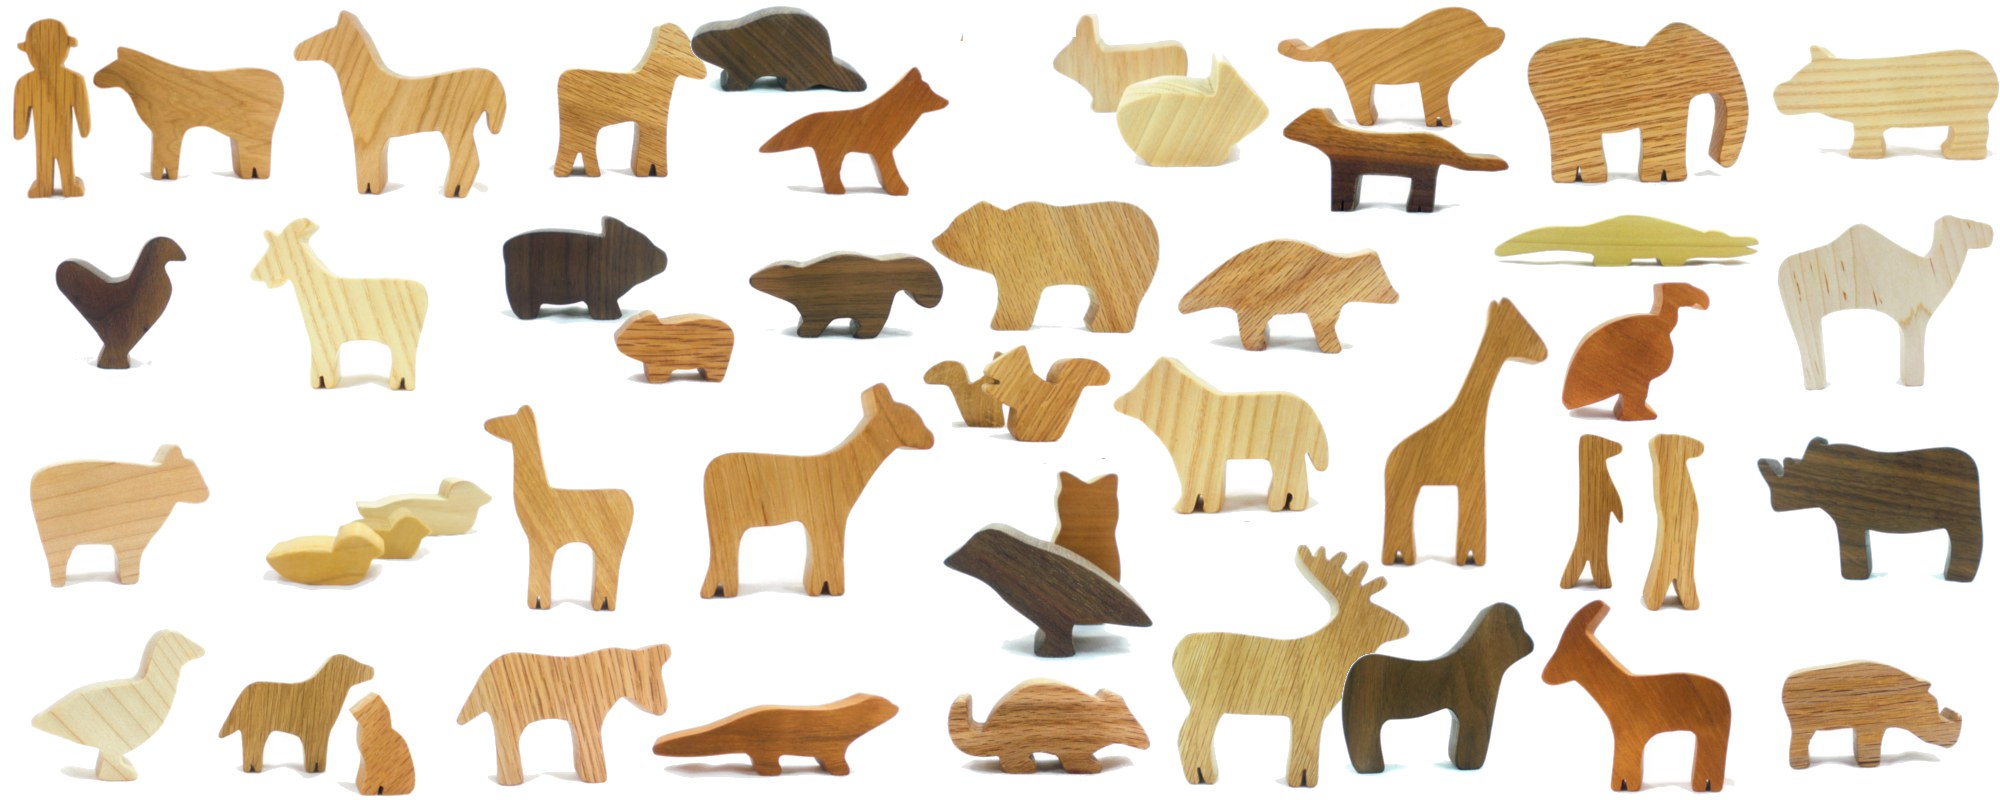 Wooden animals ornaments - Wooden Animal Toys